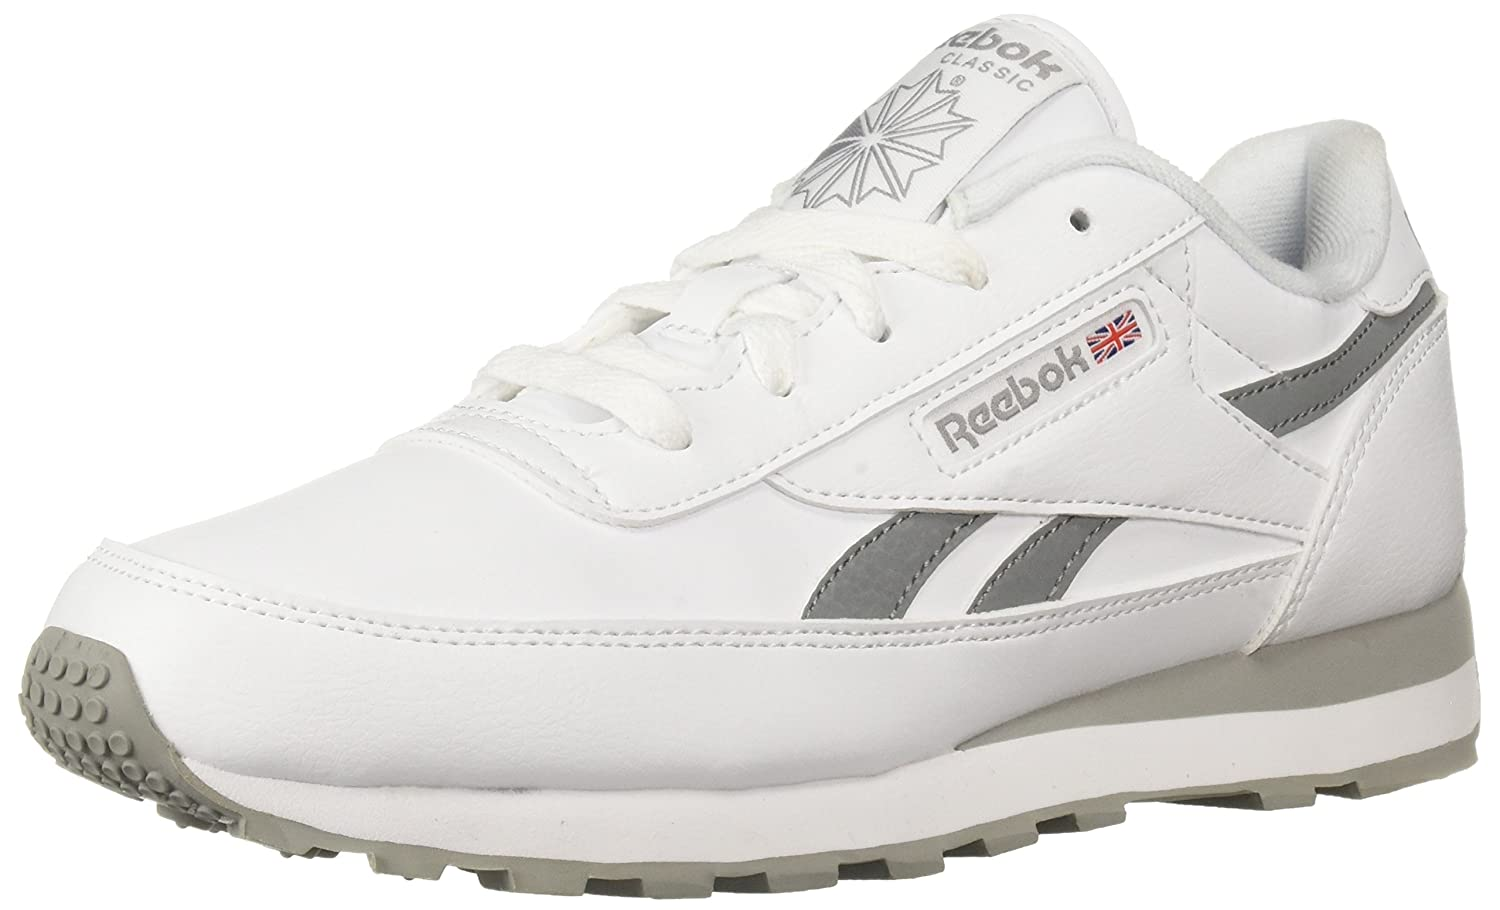 Reebok Women's Classic Renaissance Walking Shoe B078DFJW9R 10 B(M) US|Us-white/Flat Grey